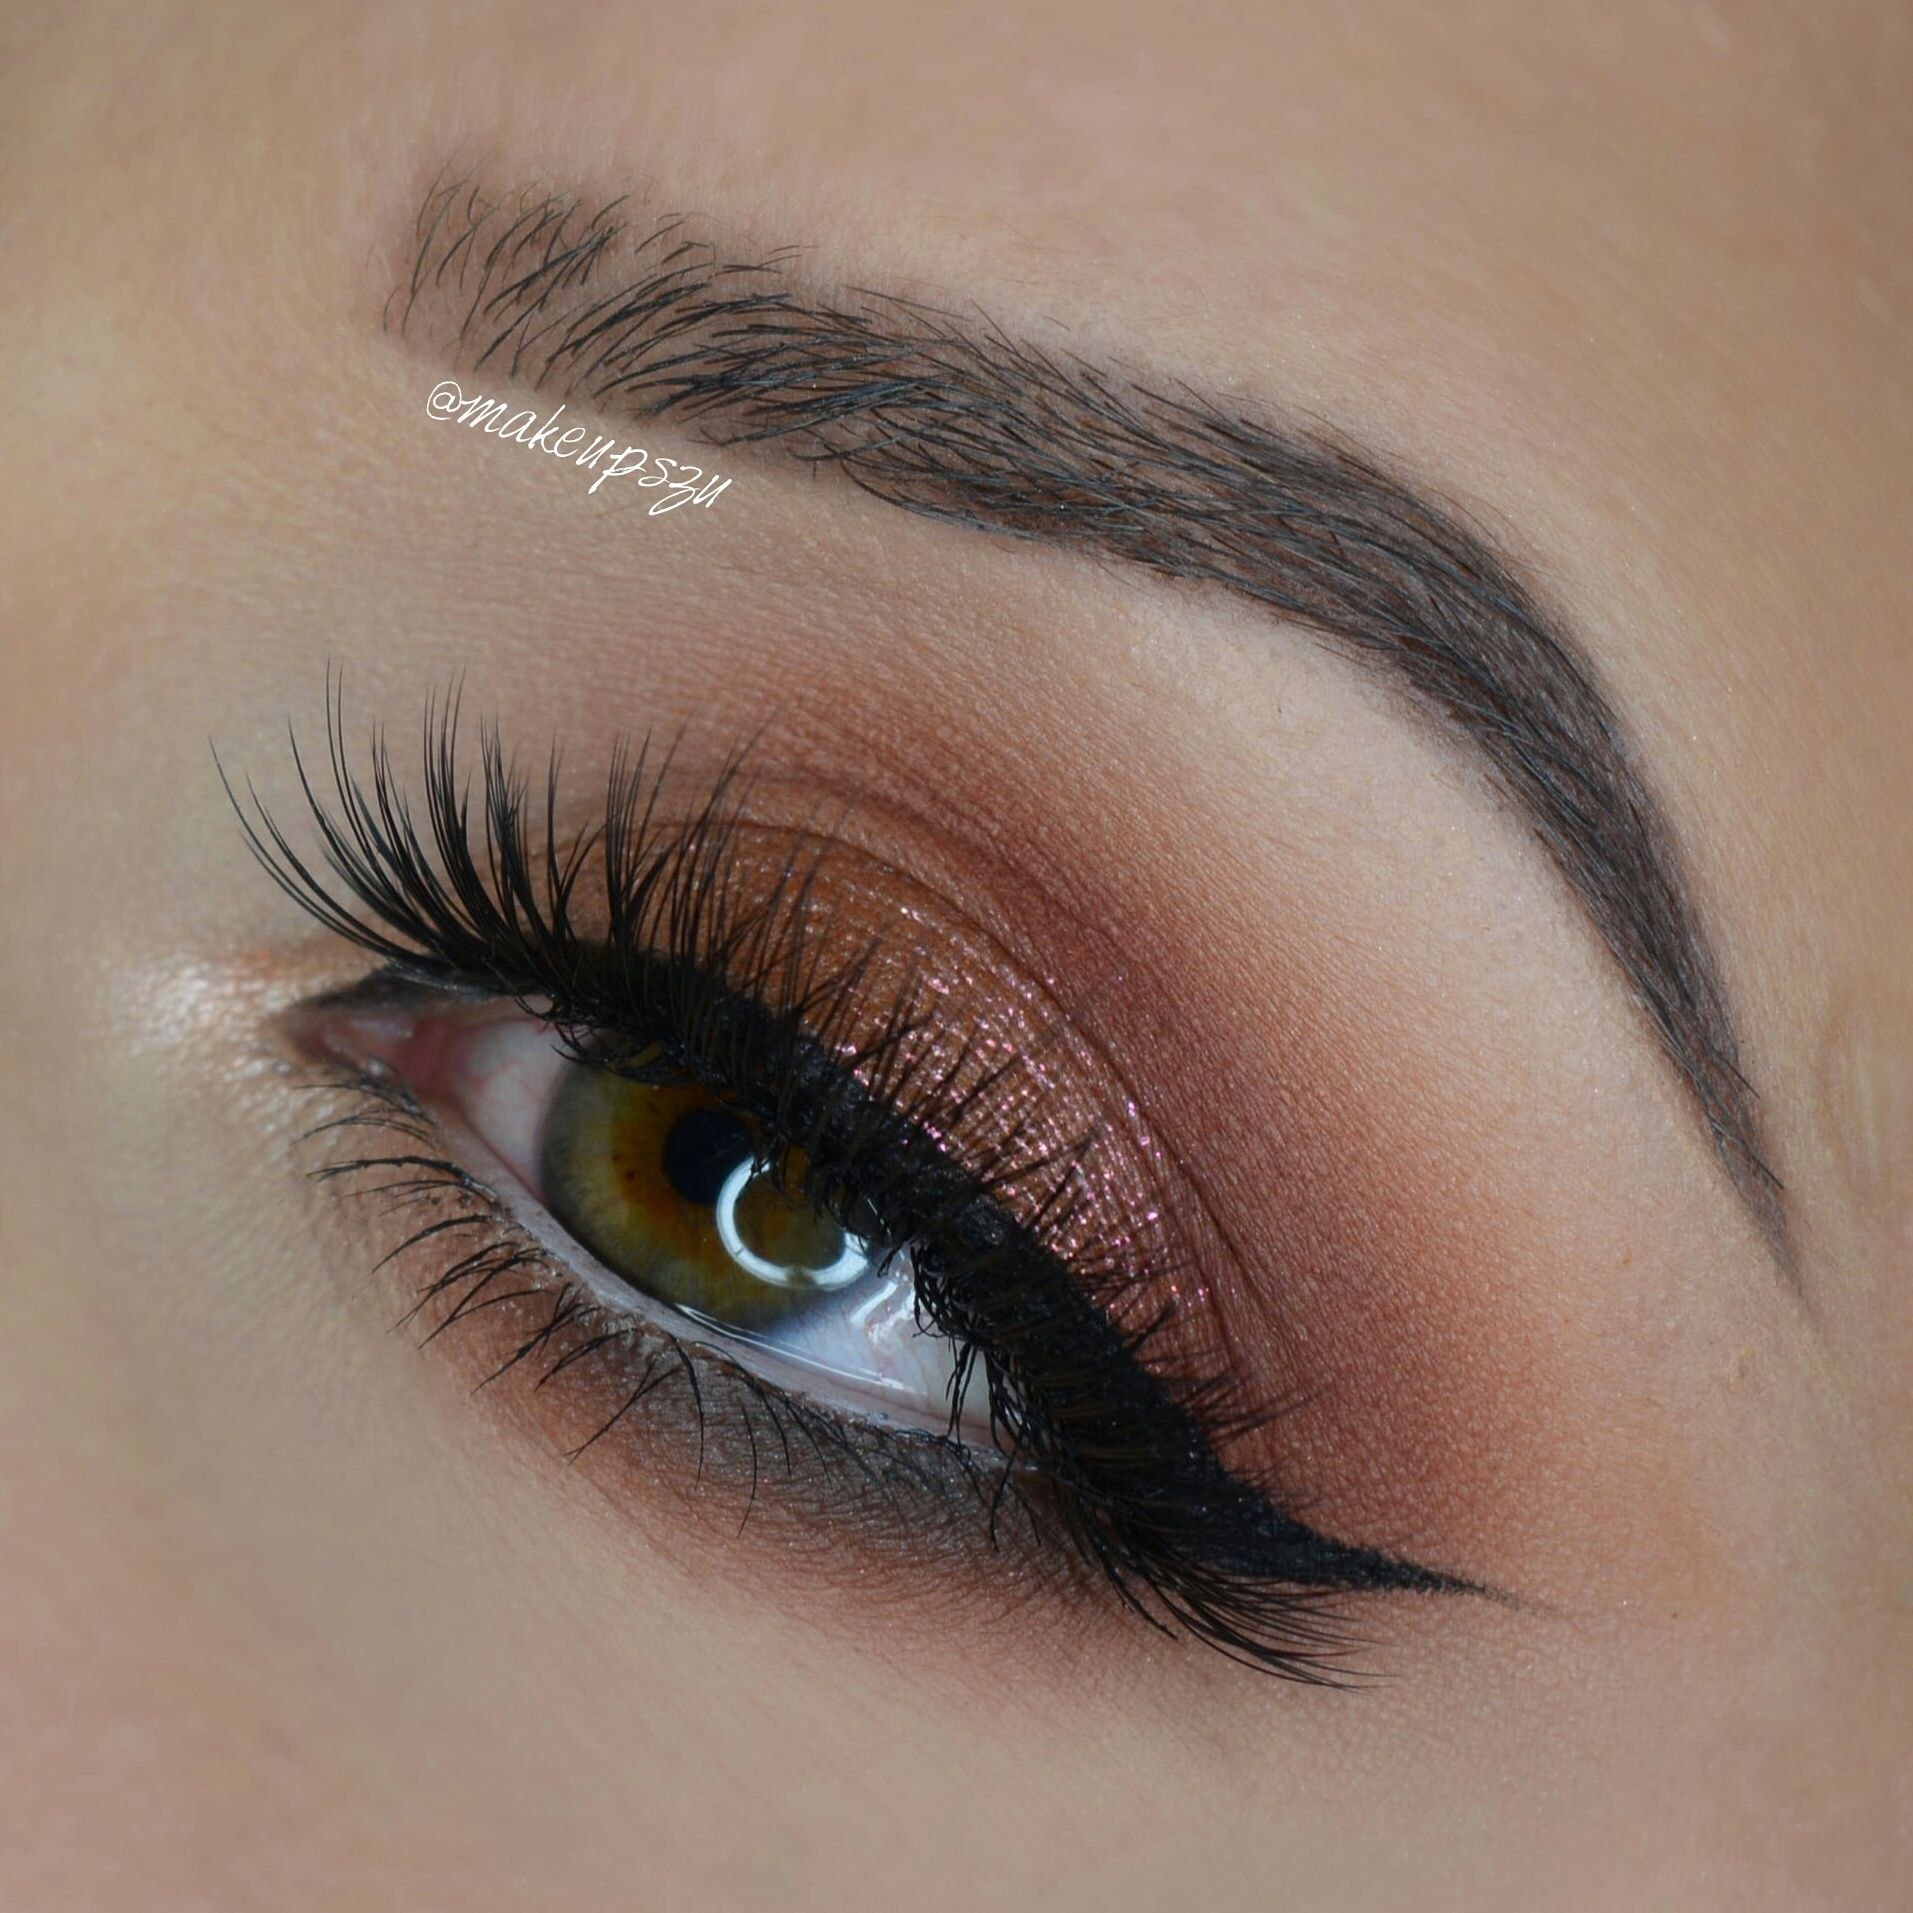 This lovely look by Kasia shows off Makeup Geek Eyeshadows